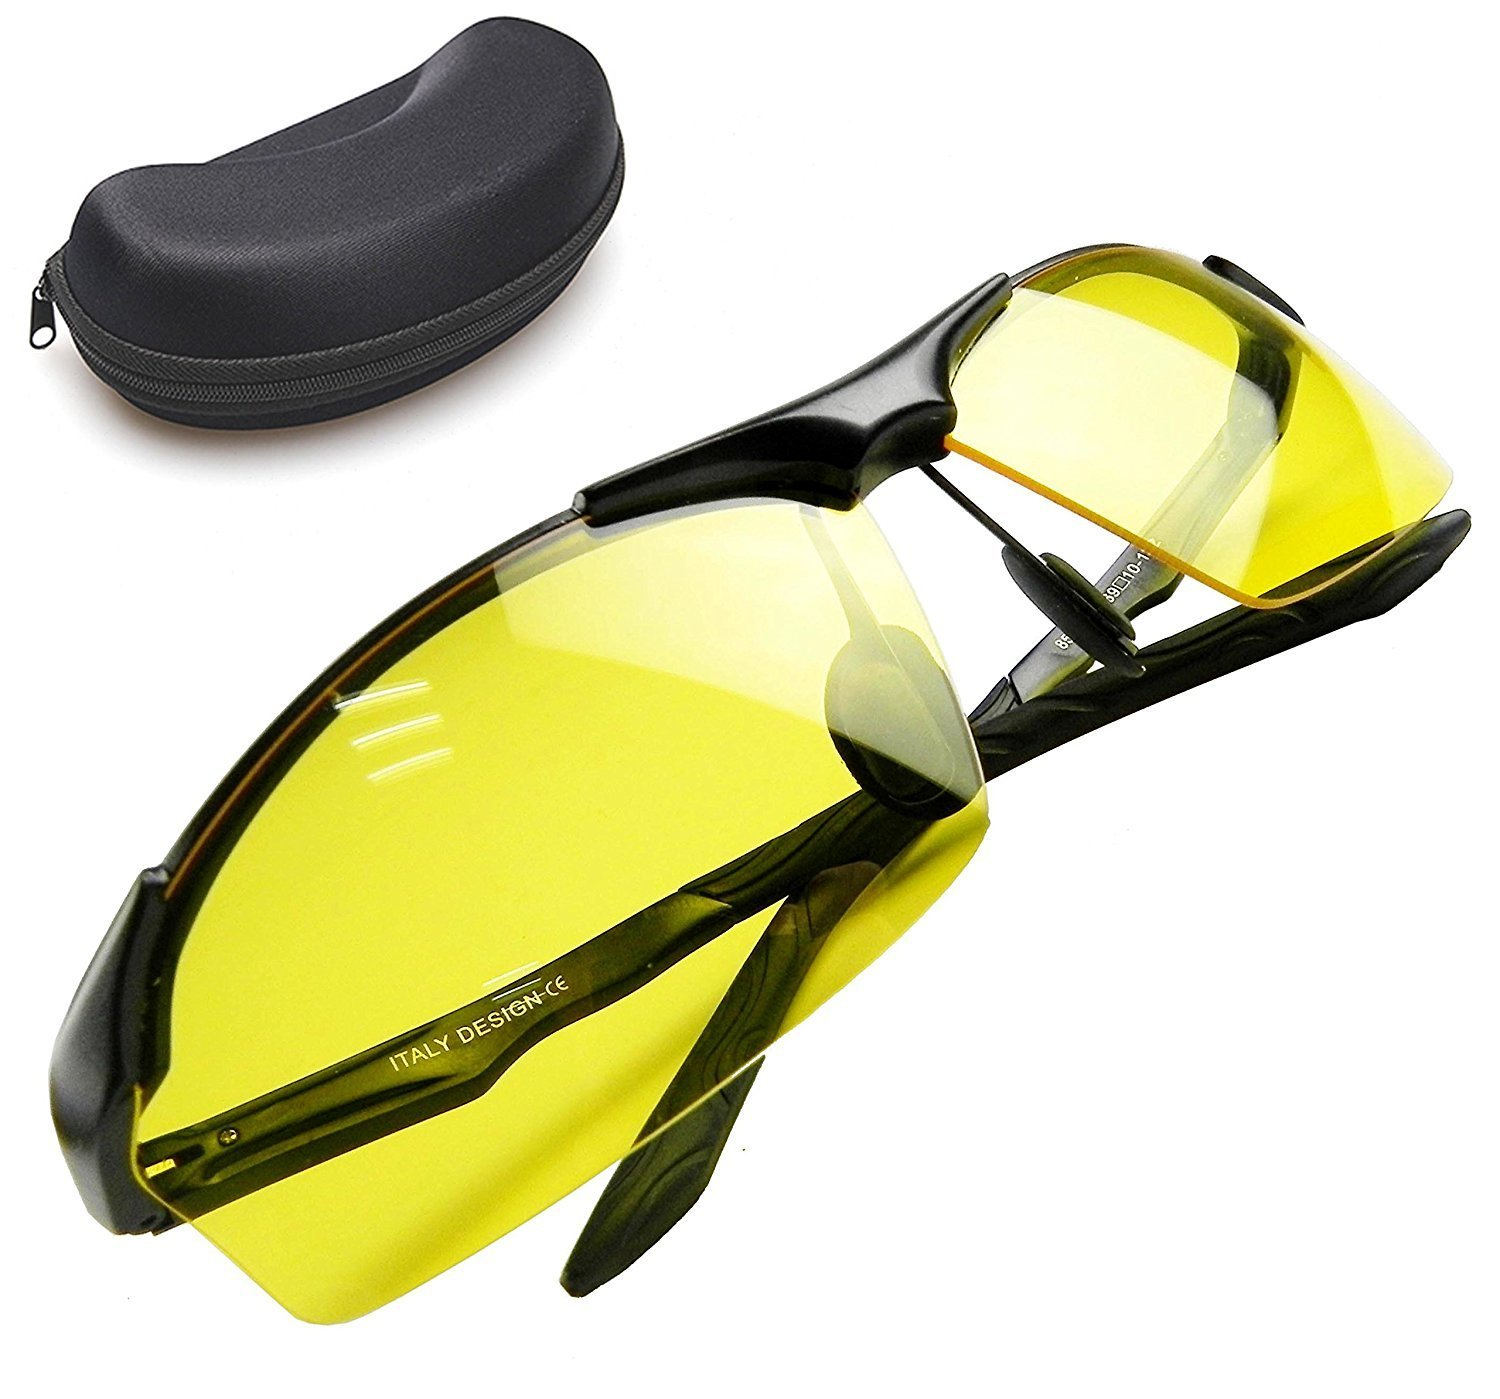 60b0edab6a289 Get Quotations · Night Vision Glasses